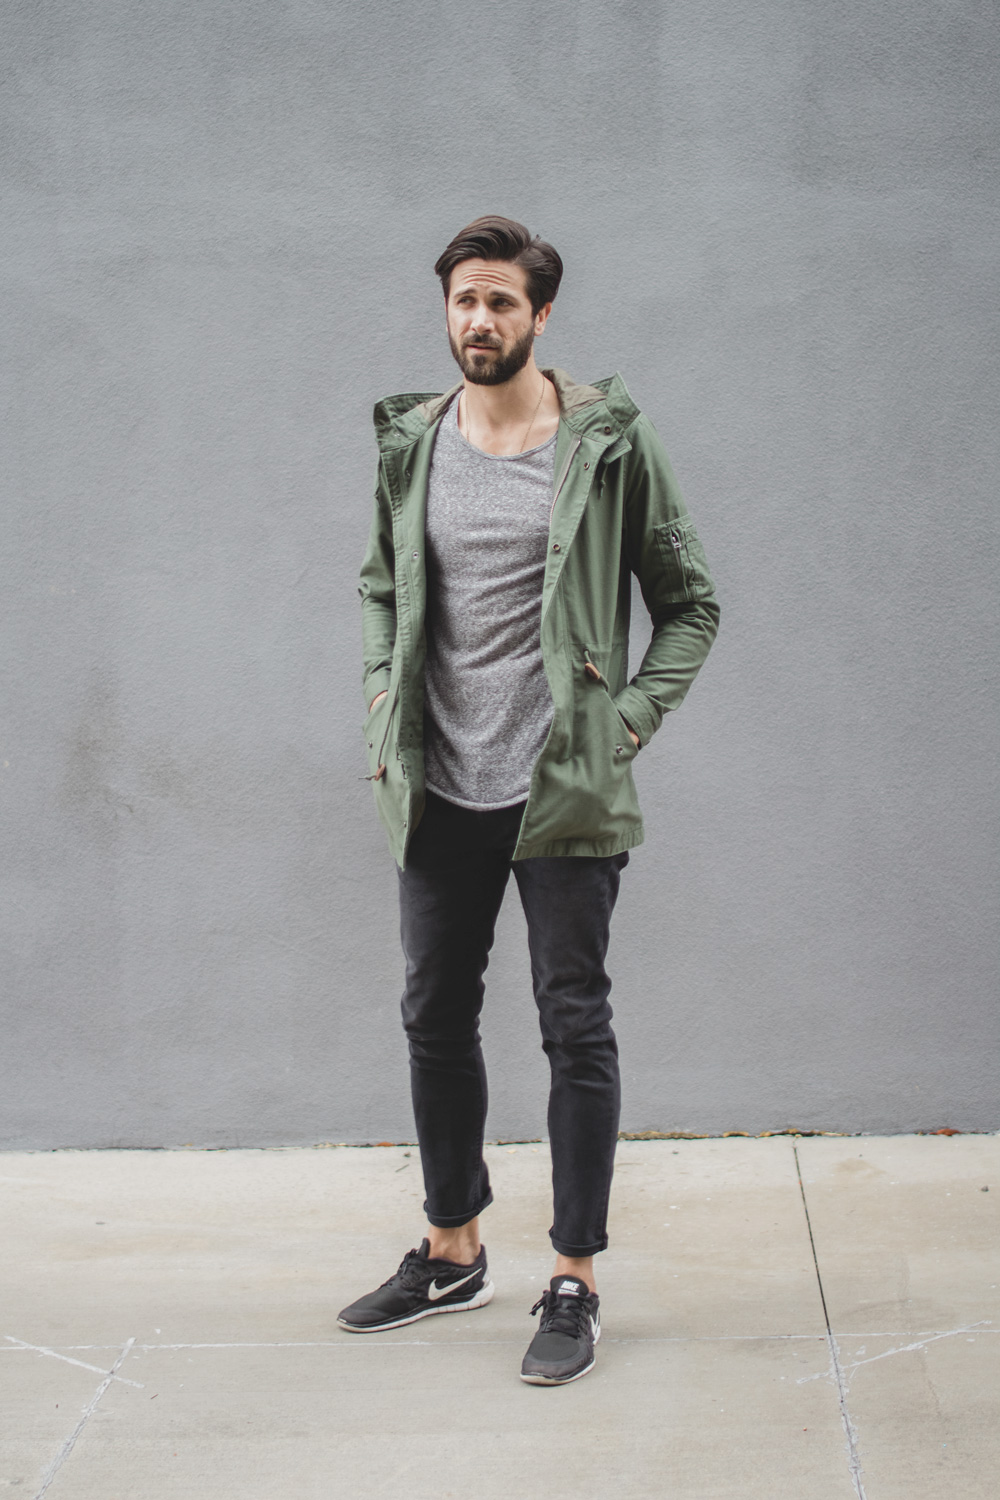 Stylish Men Outfits Look With Jeans 23